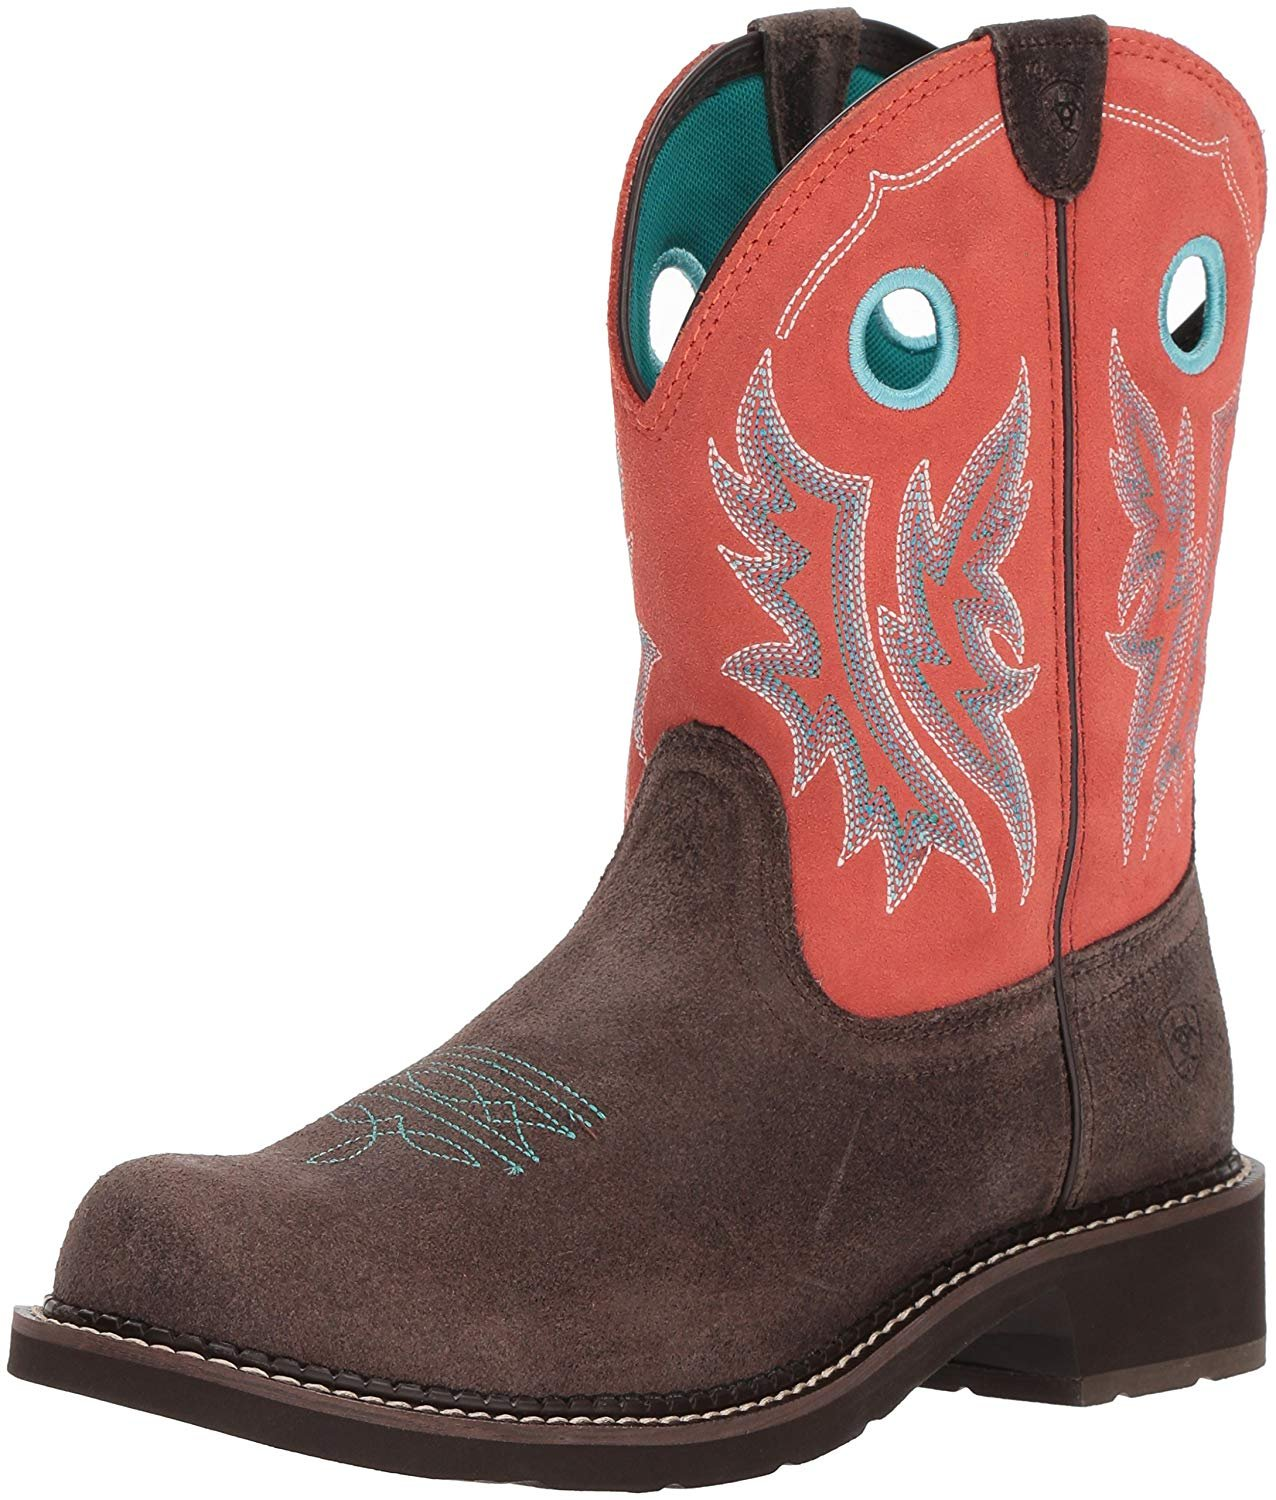 Ariat Women's Fatbaby Heritage Cowgirl Western Boot B07BR72BM5 11 B|Chocolate